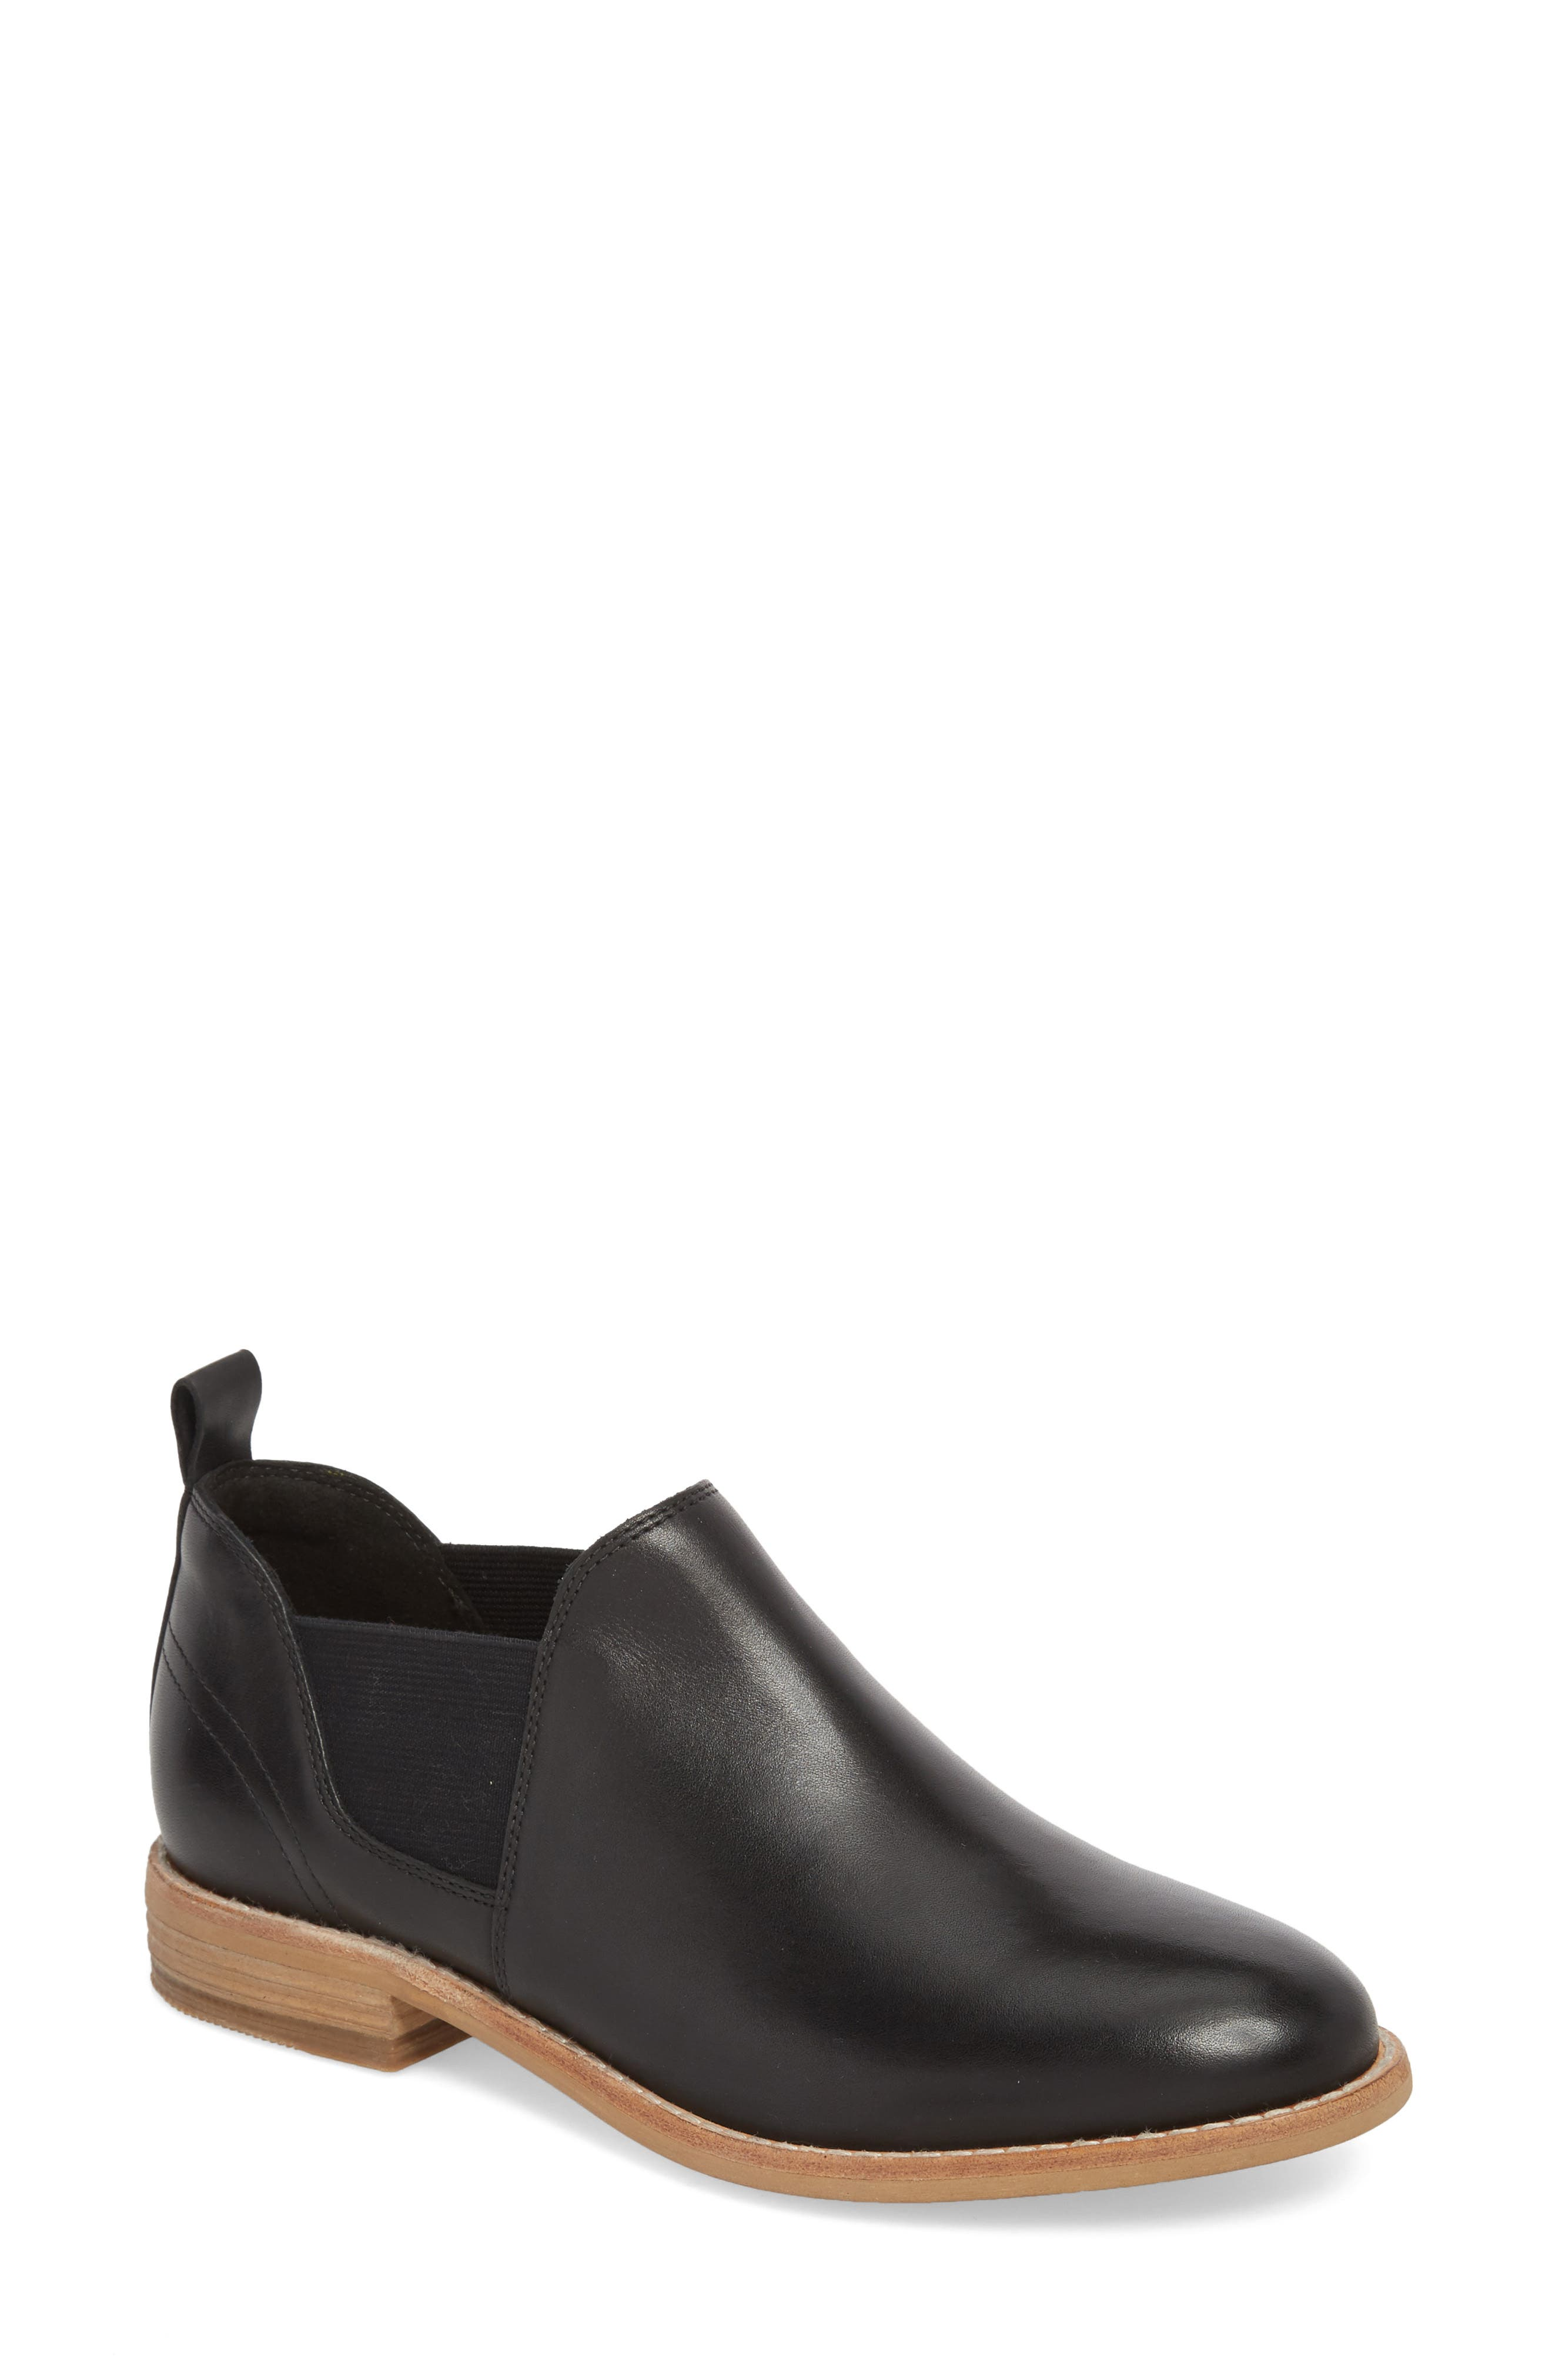 Edenvale Page Bootie,                         Main,                         color, BLACK LEATHER